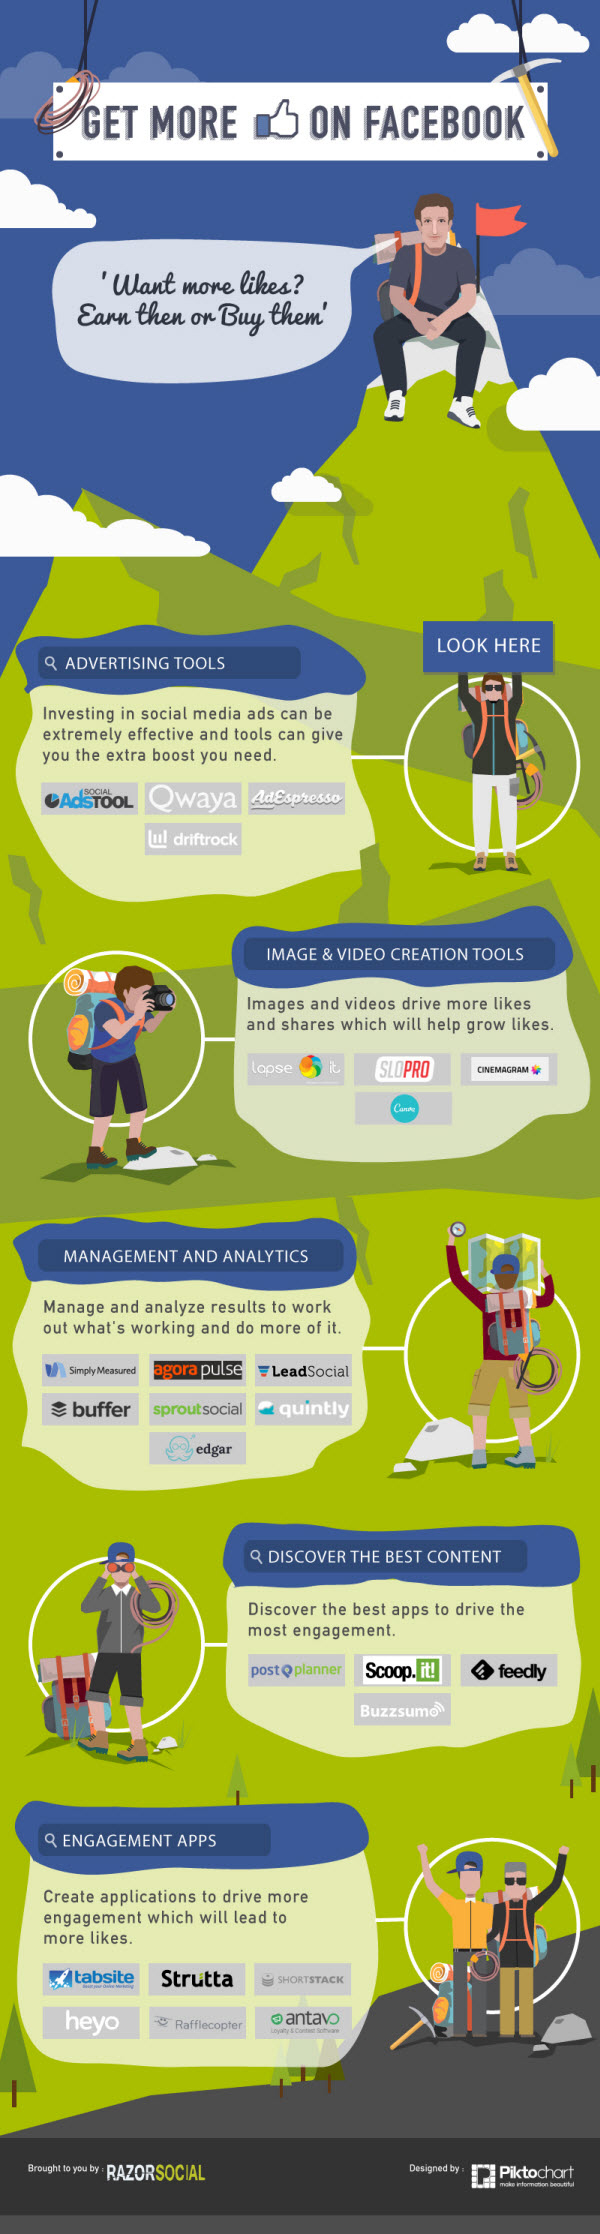 Want More Facebook Likes Here's 25 Tools to Help Your Page Grow